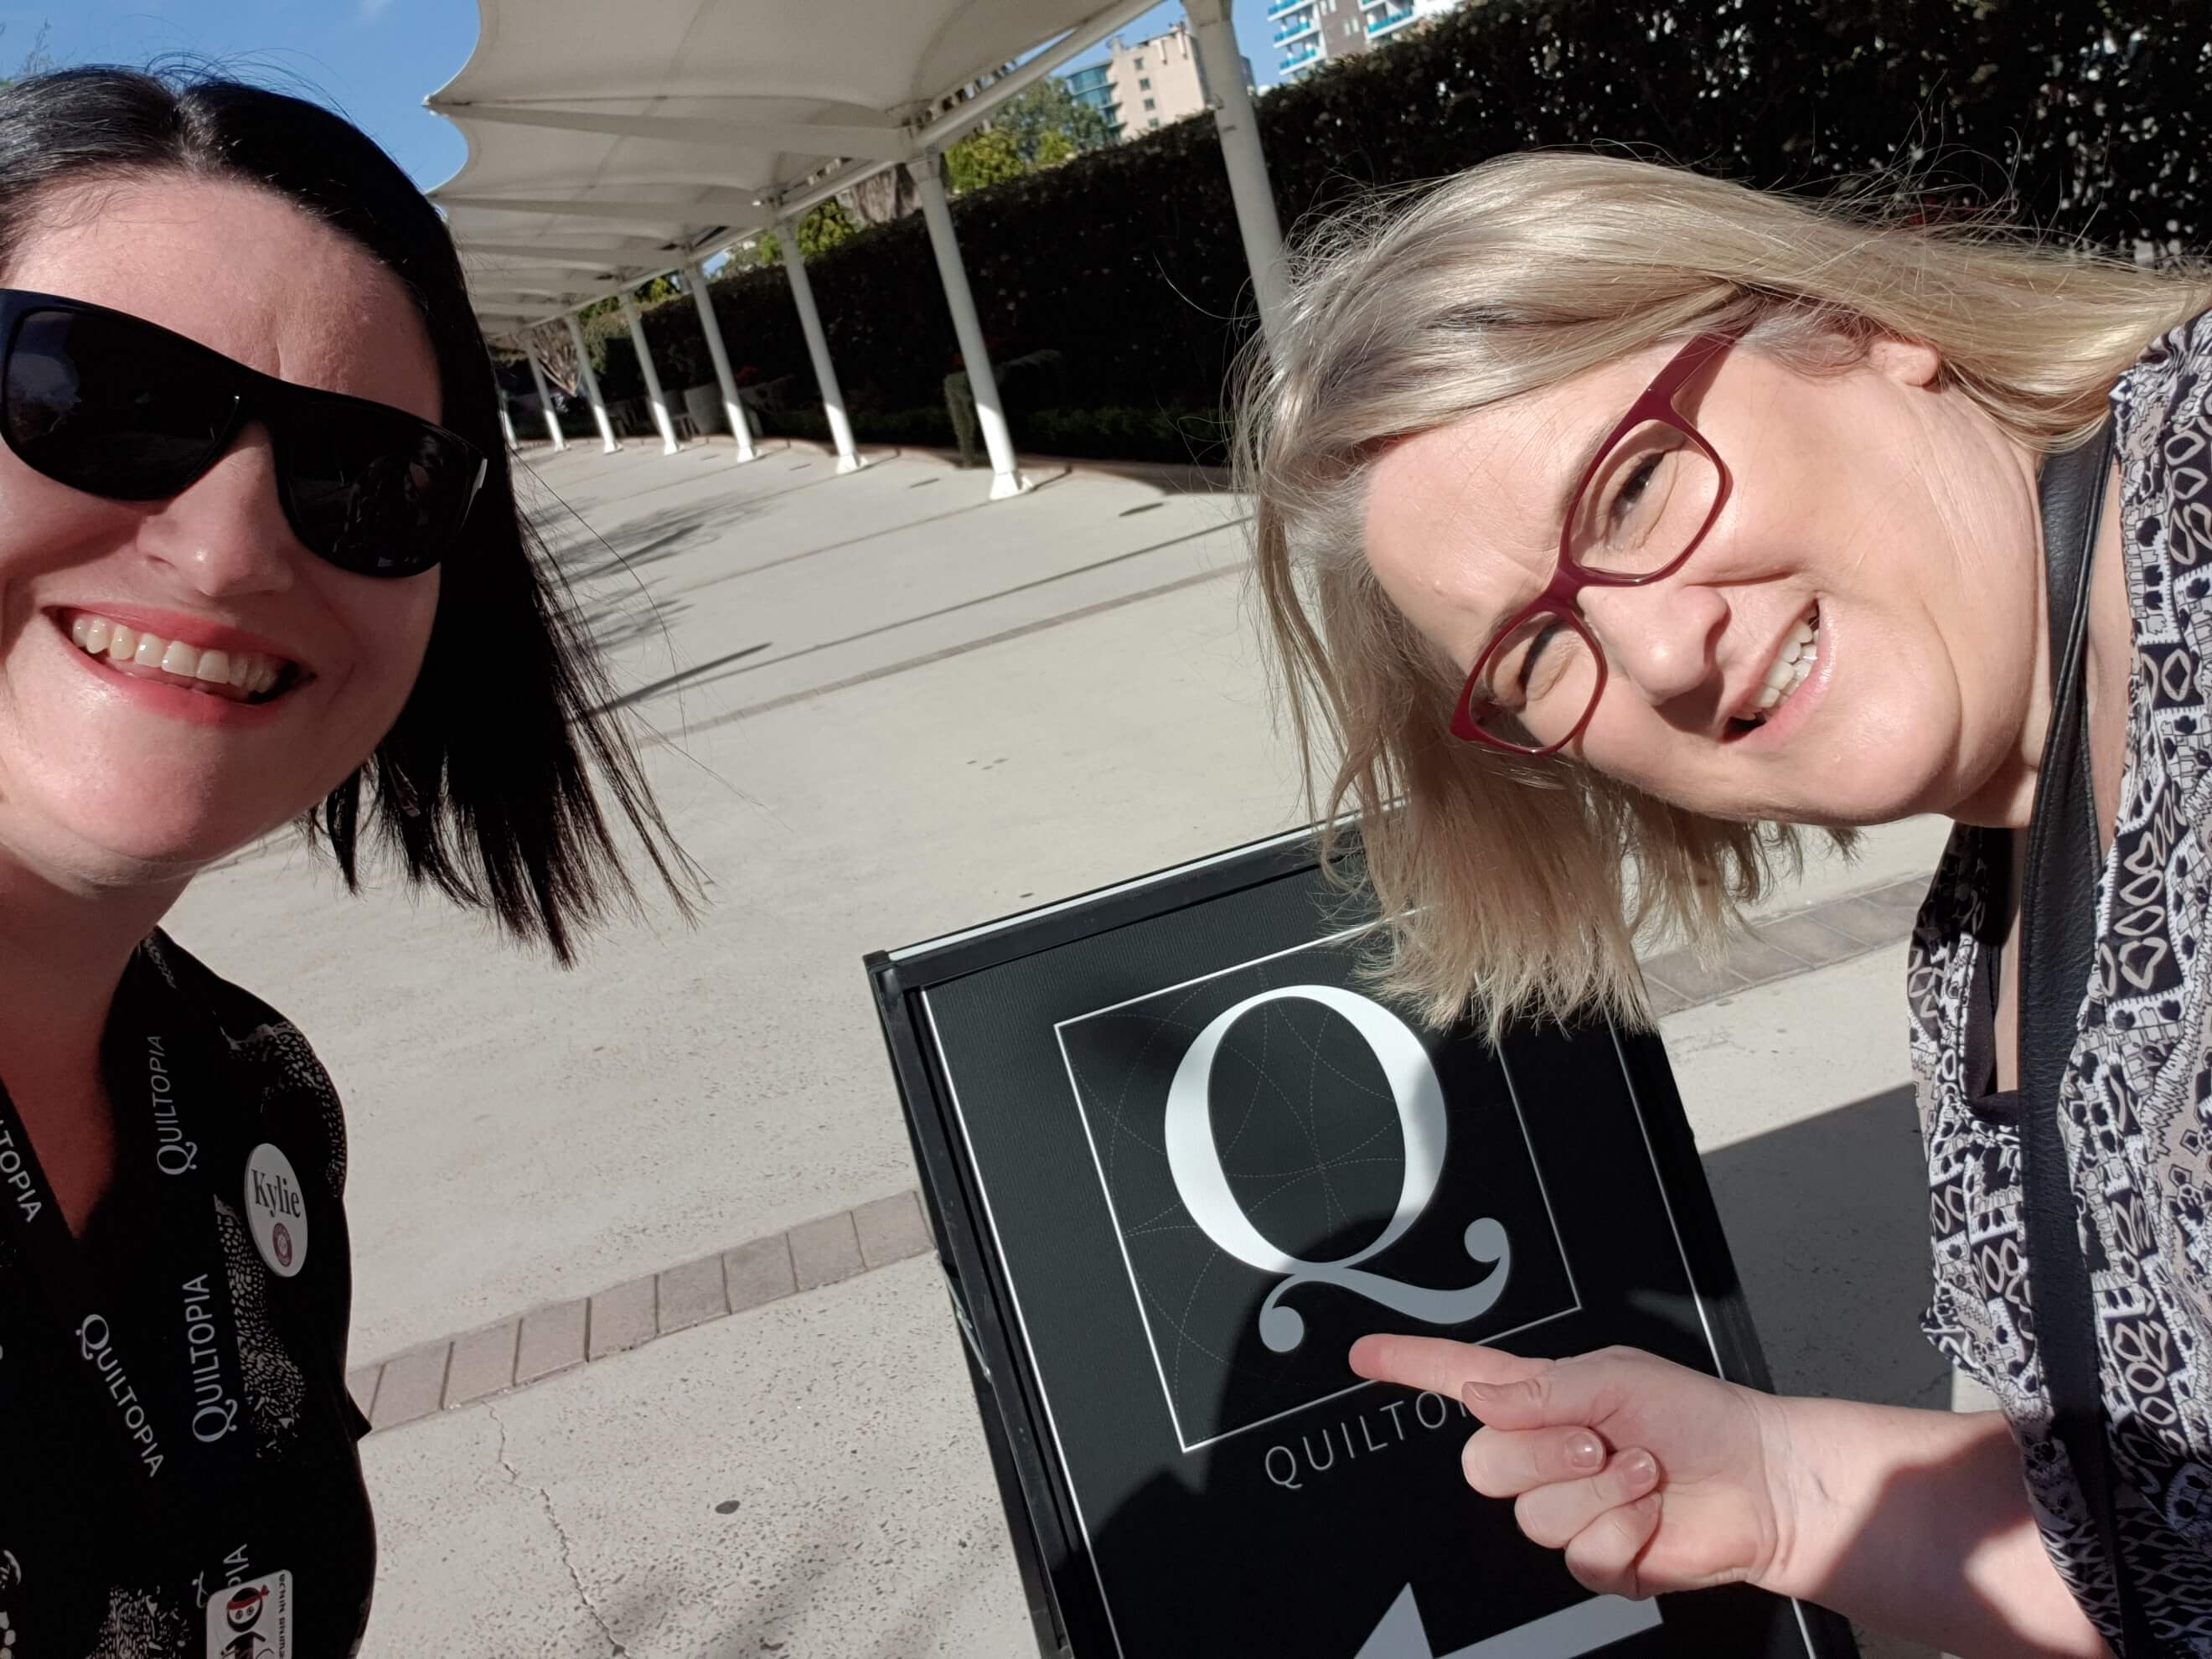 I had so much fun with new friends, Helen Stubbings and I heading into the Quiltopia event.